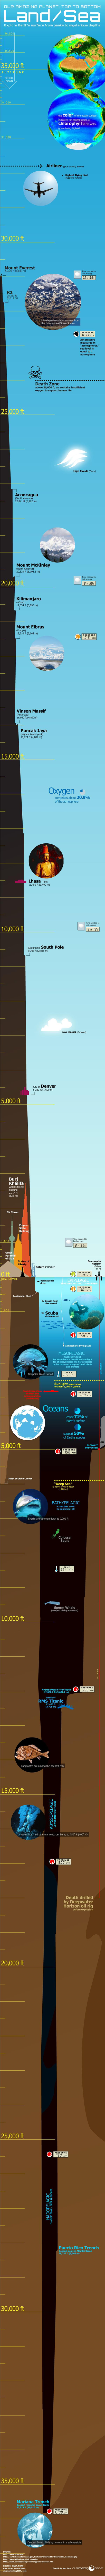 tallest mountain to deepest ocean trench infographic How to Grasp Size, Scale and Temperature with Three Giant Infographics